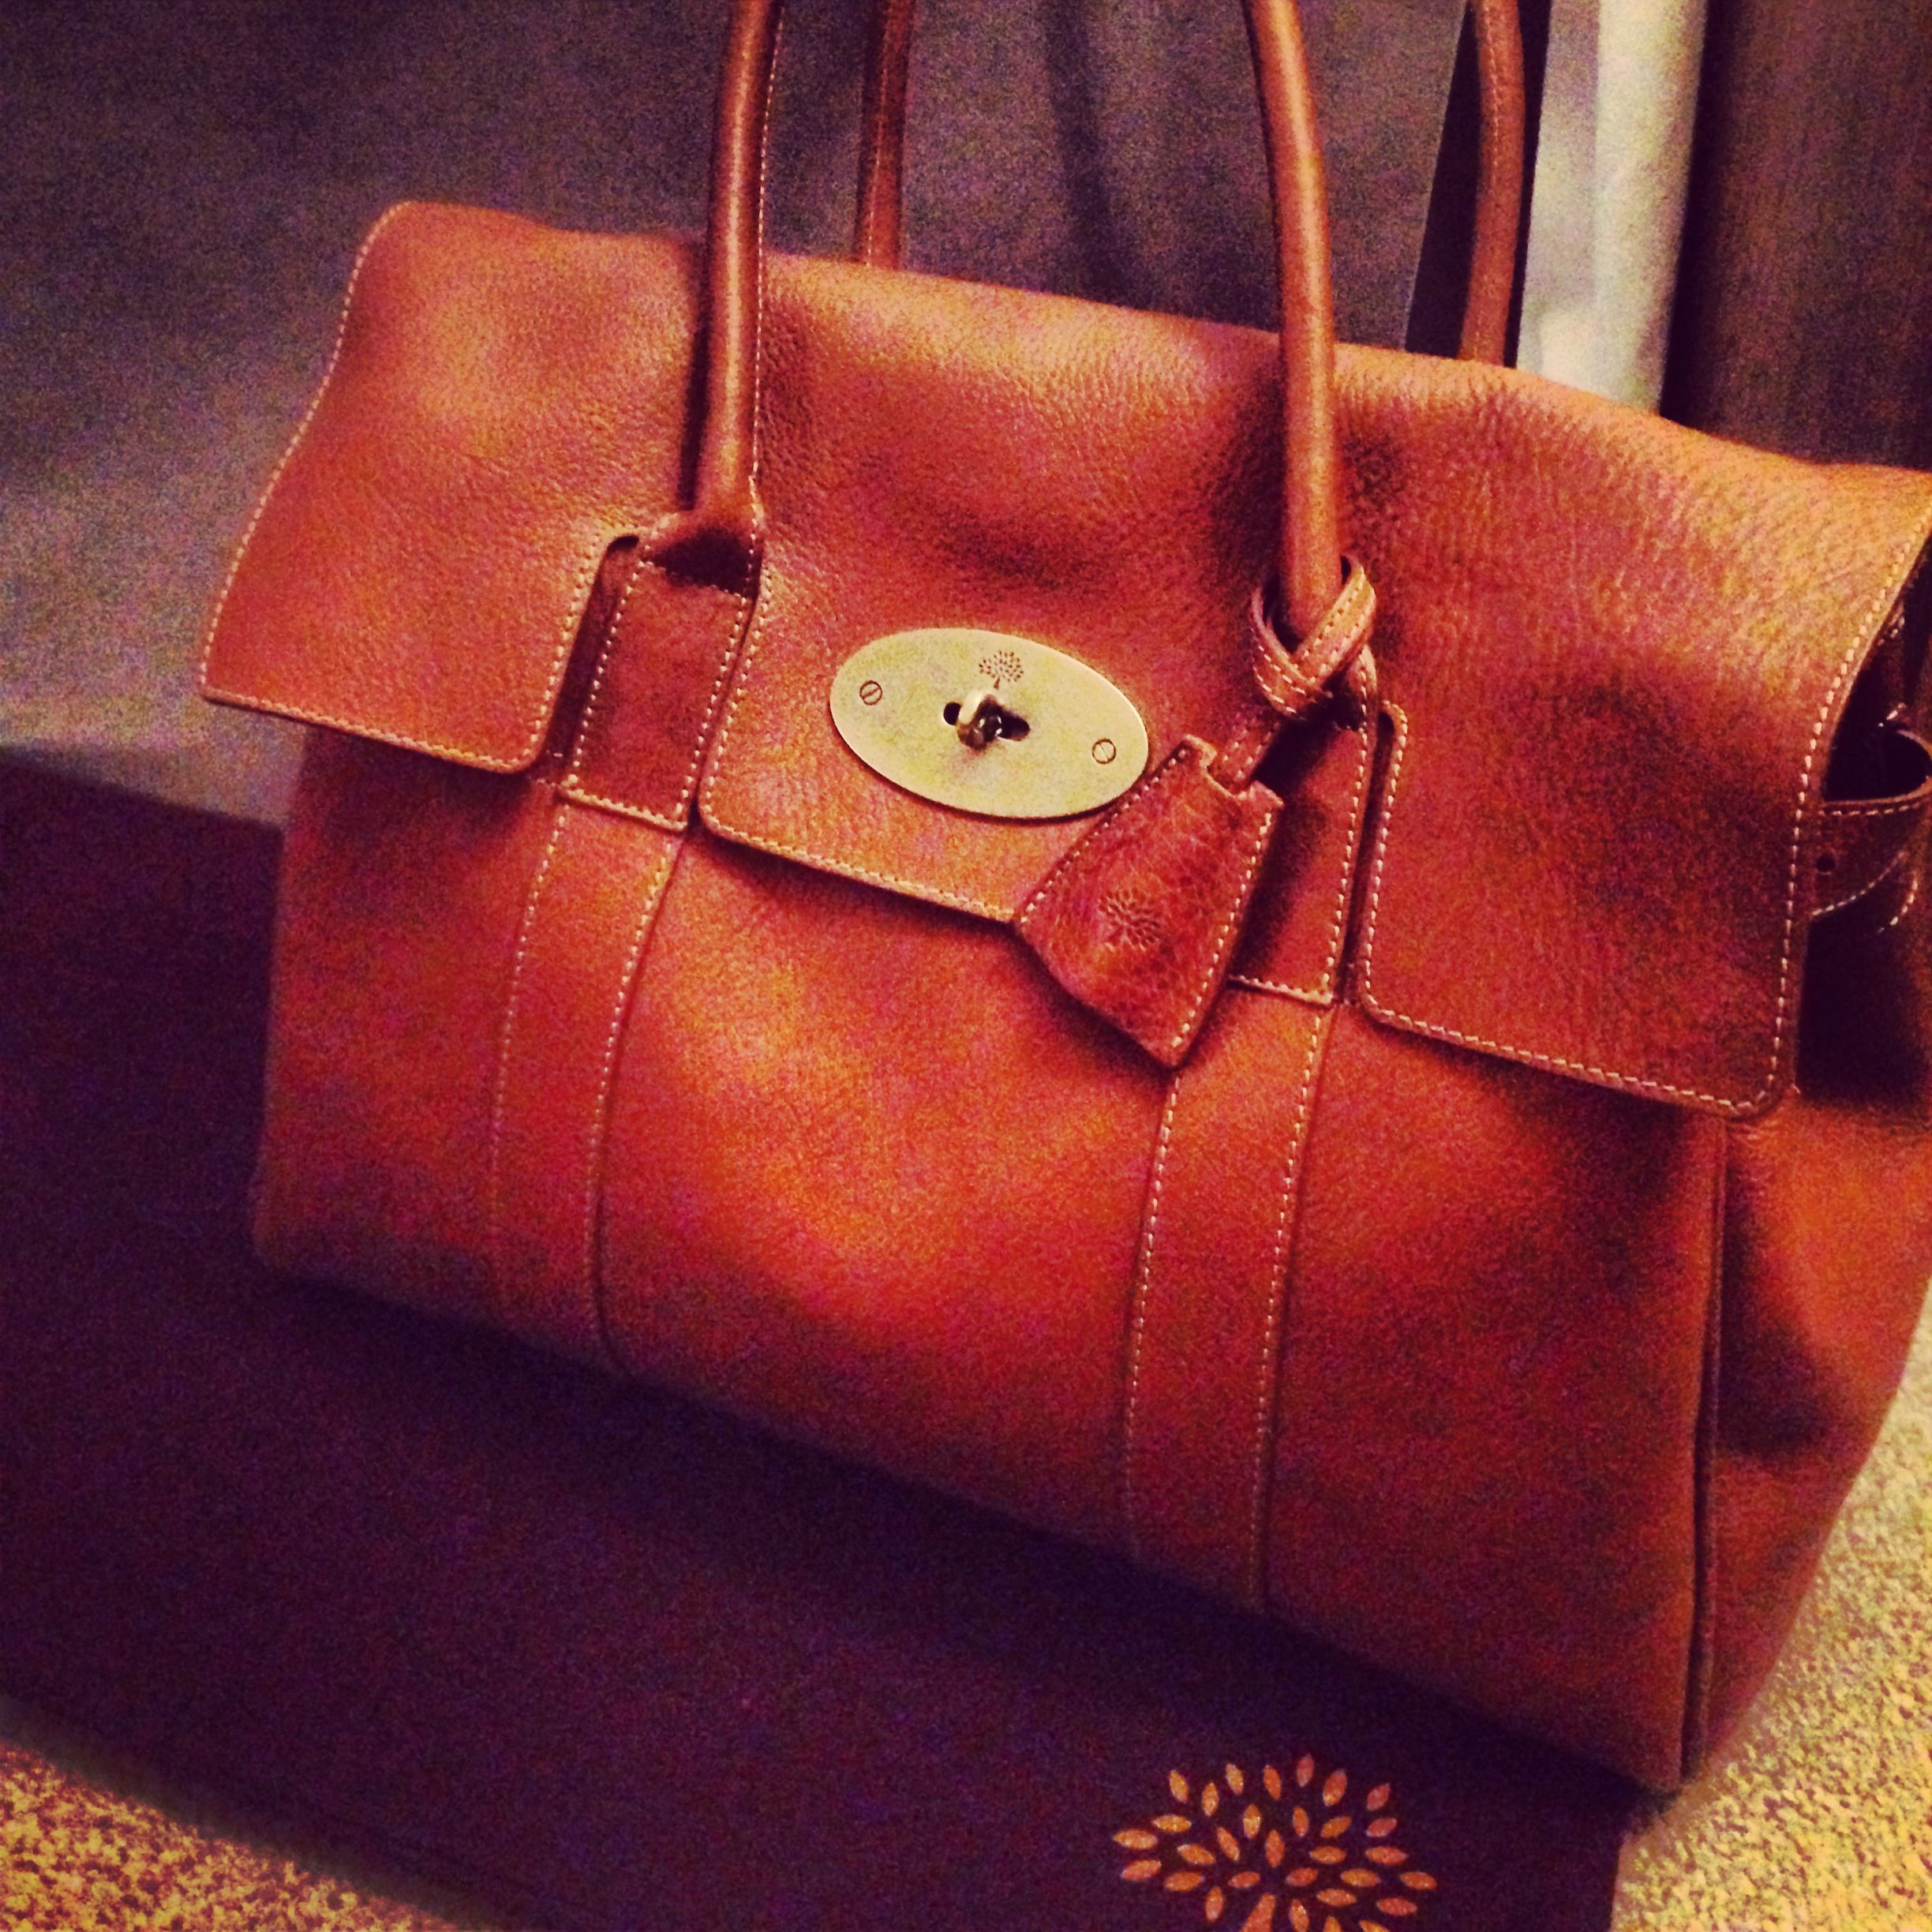 Iconic Mulberry Bayswater bag! True British style <3